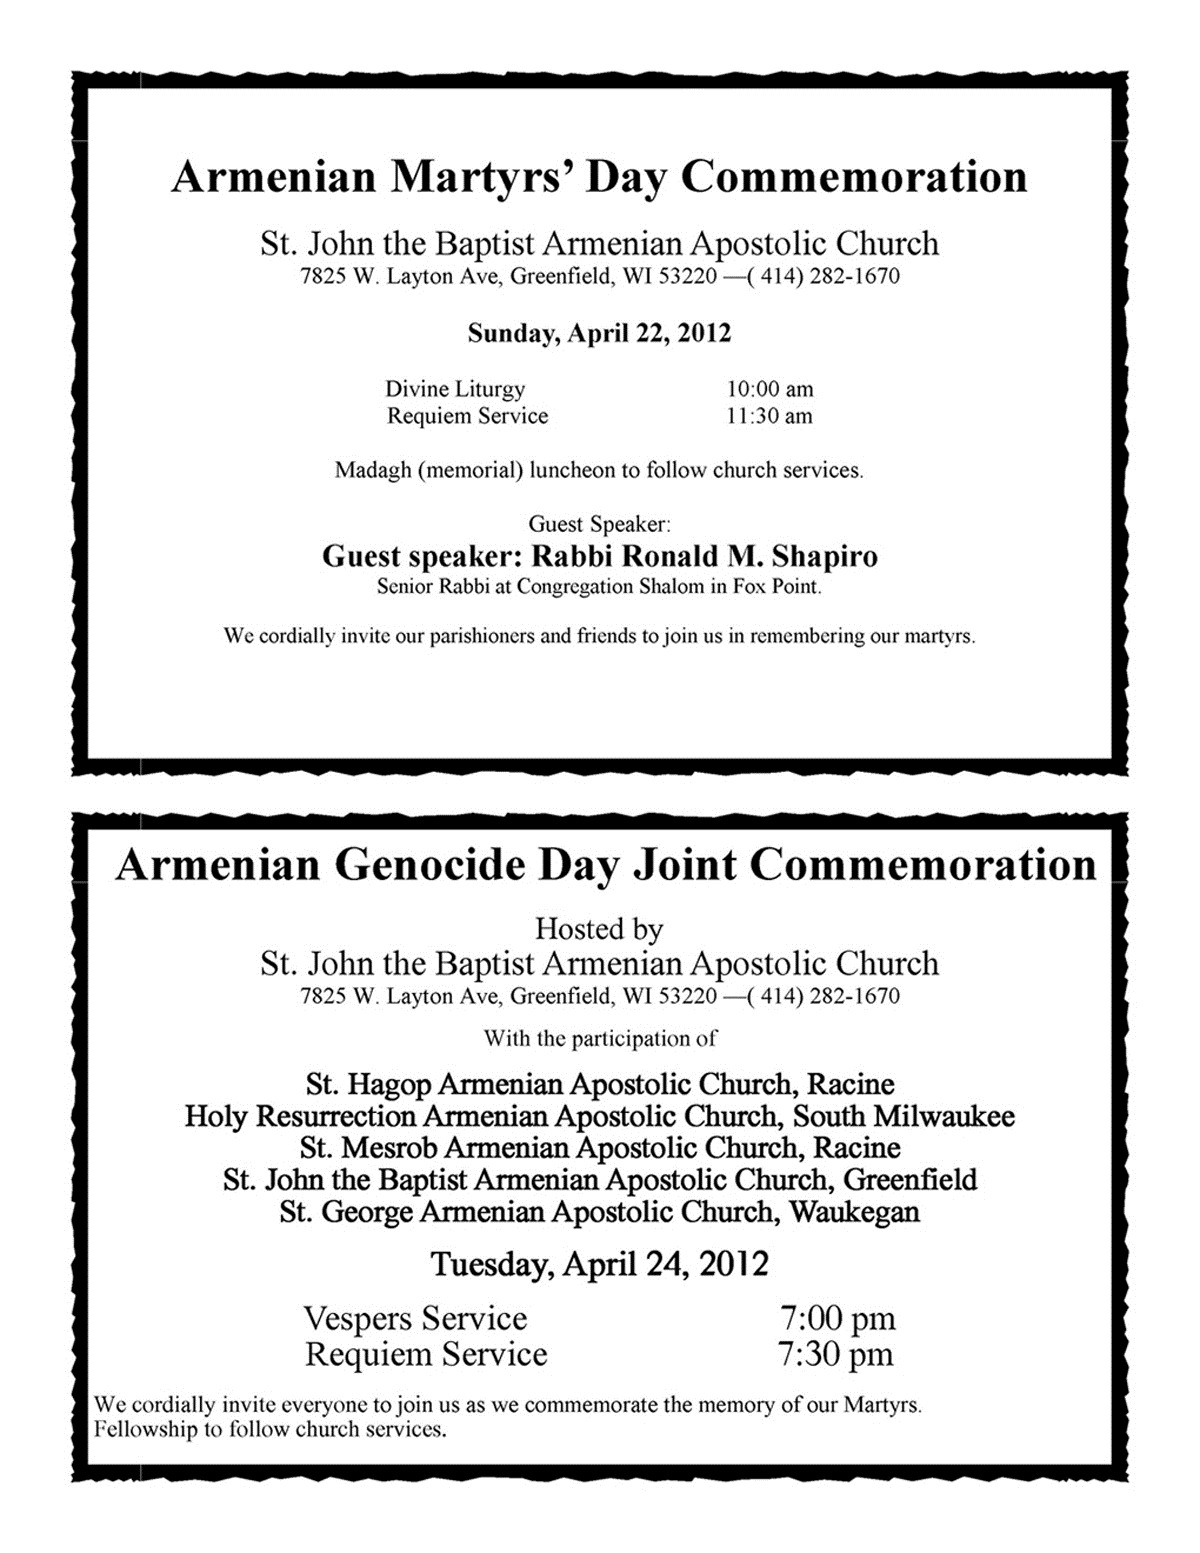 MartyrsDay2012email